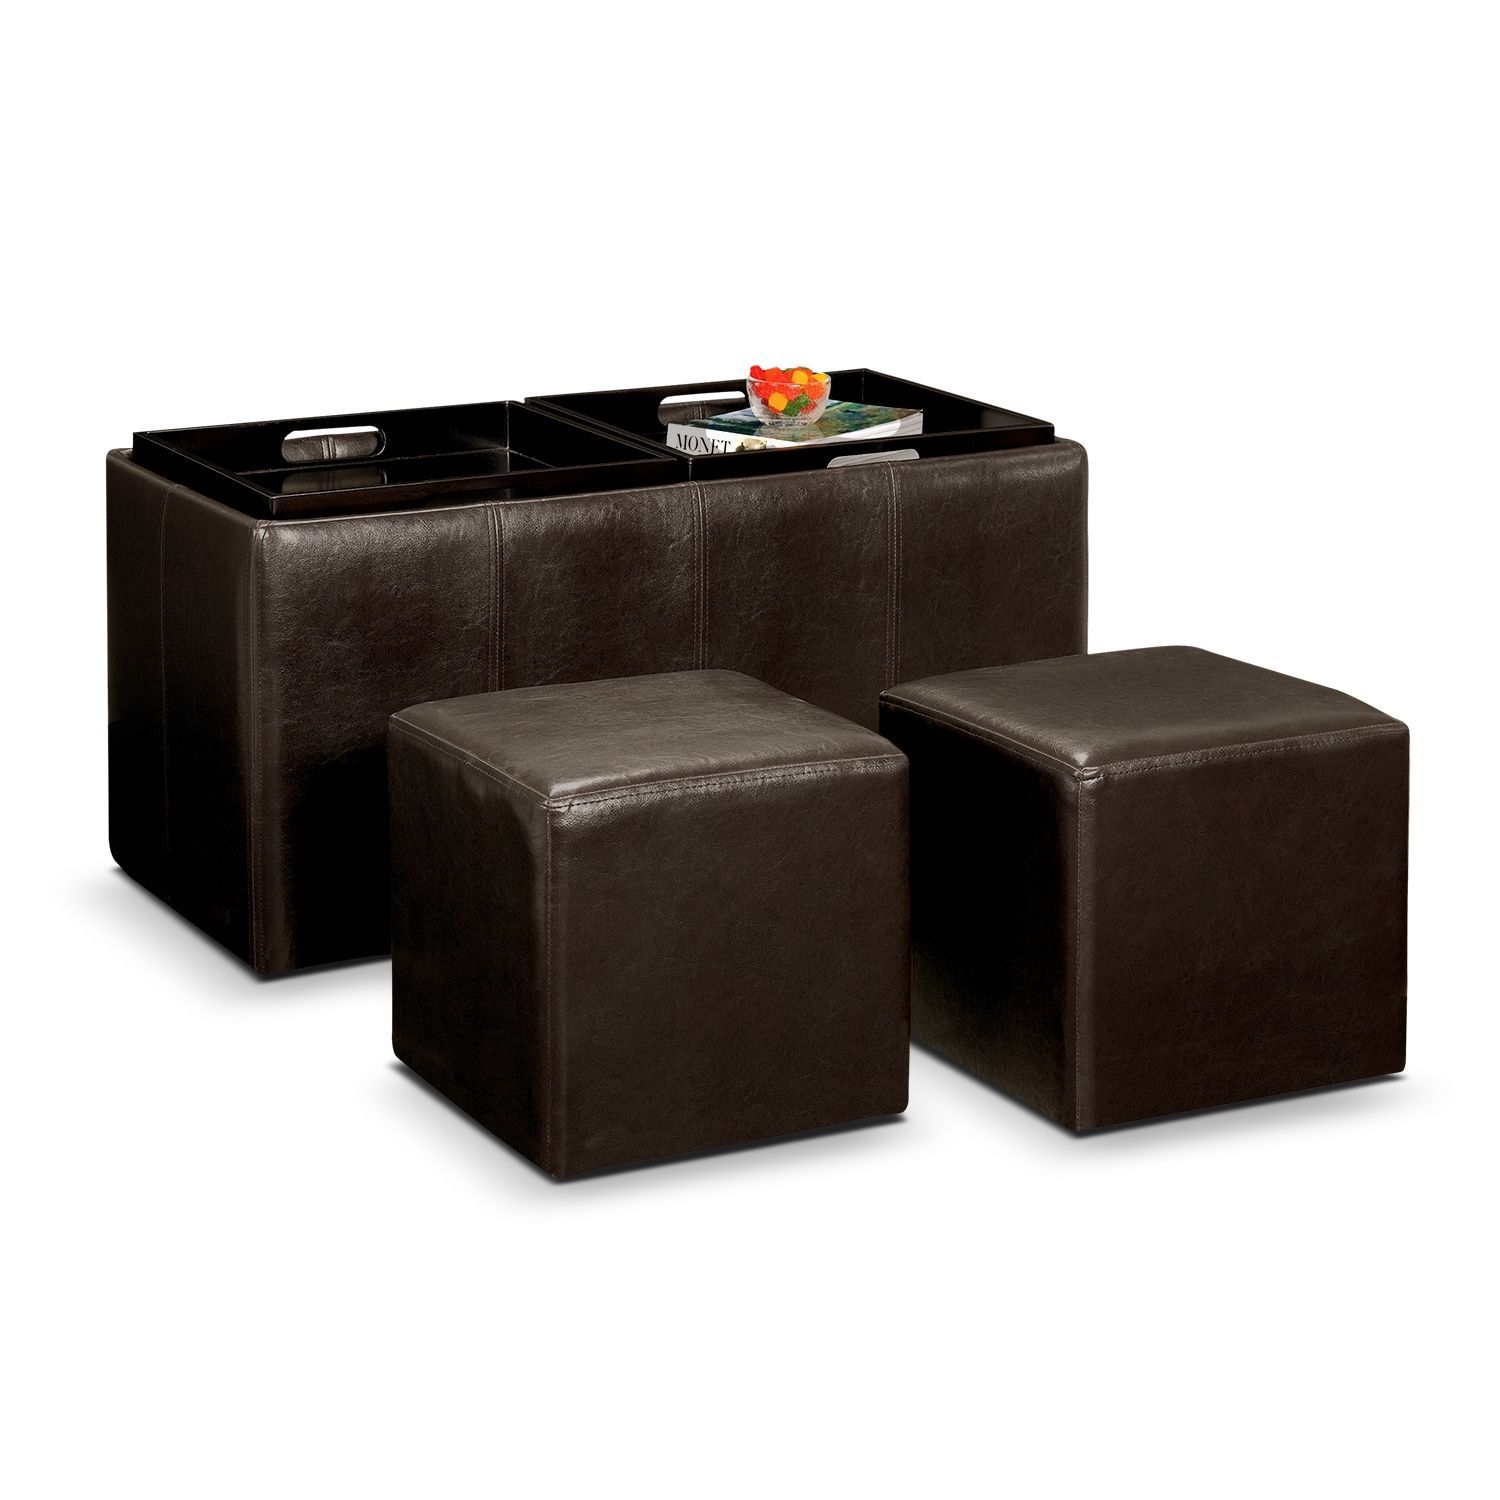 Accent and occasional furniture tiffany 3 pc storage ottoman with trays occasionalseatinglivingroom